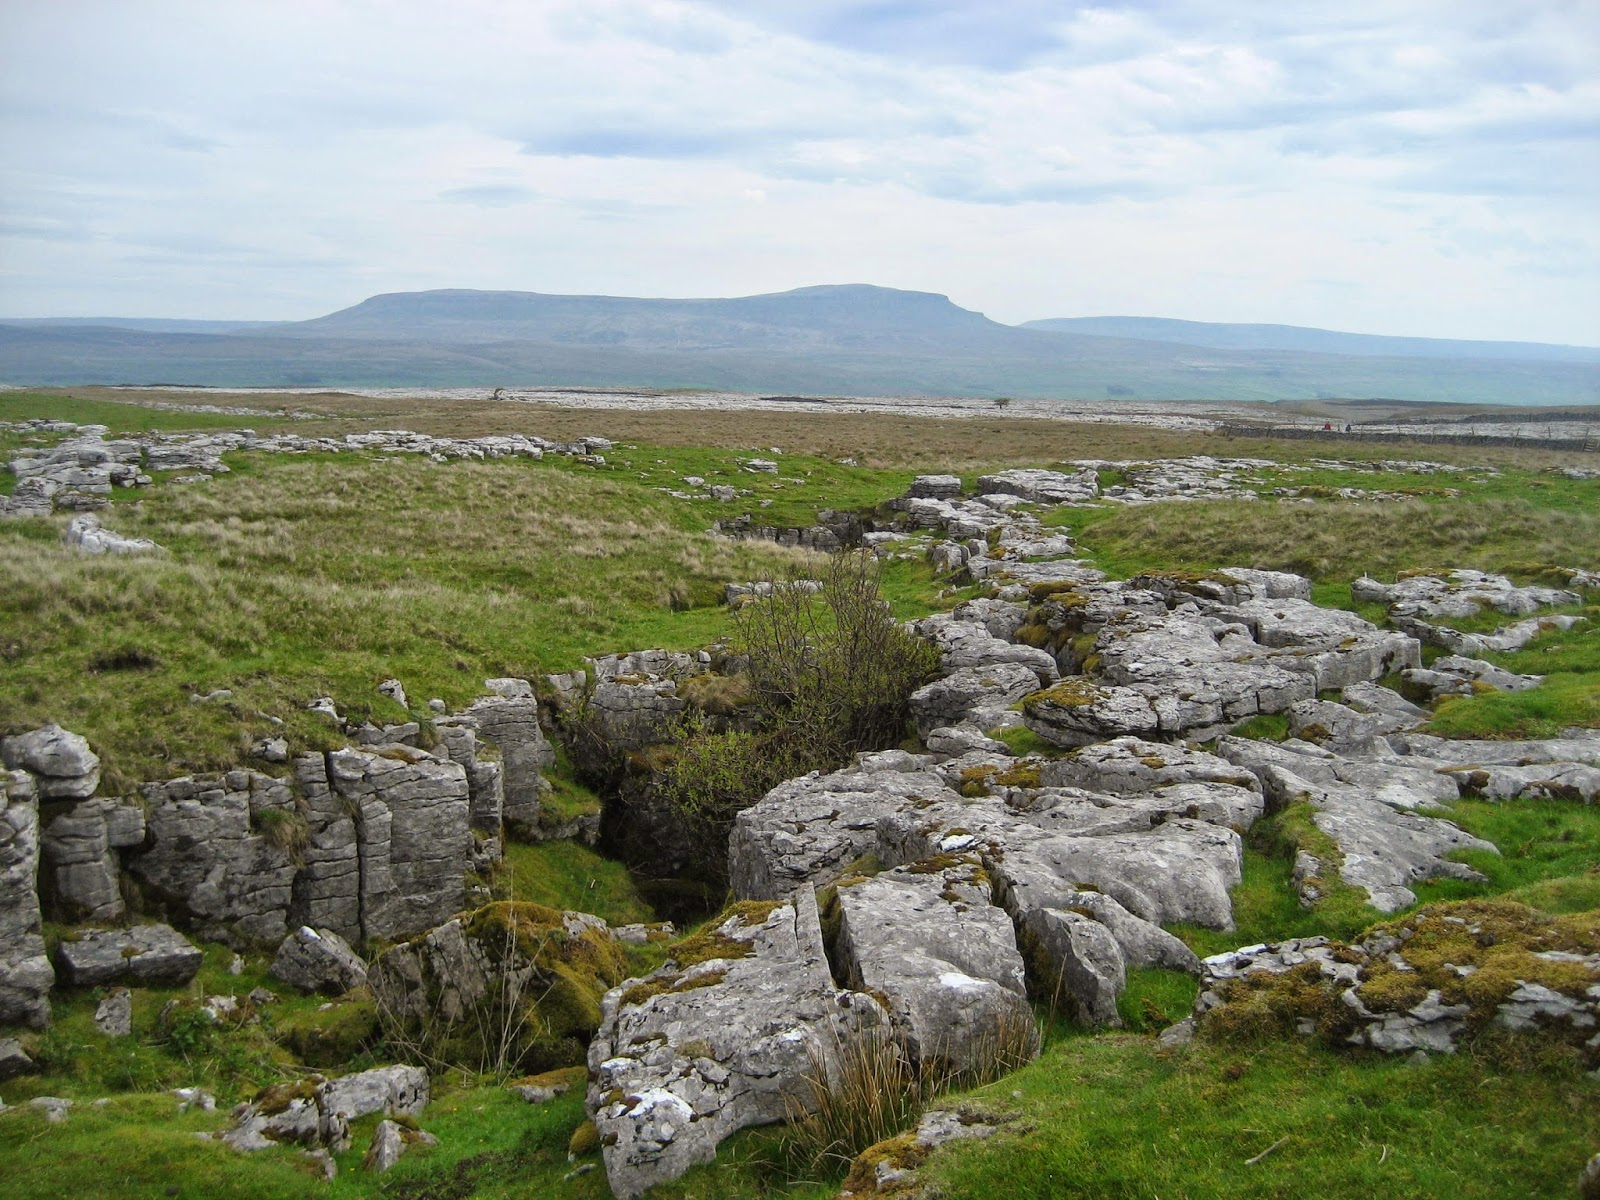 The entrance to Nick Pot, looking east towards Pen-y-ghent.  The unspectacular nature of the entrance belies one of the toughest and most spectacular systems on Ingleborough, with masses of unstable fault breccia and huge underground drops. Stephen Oldfield